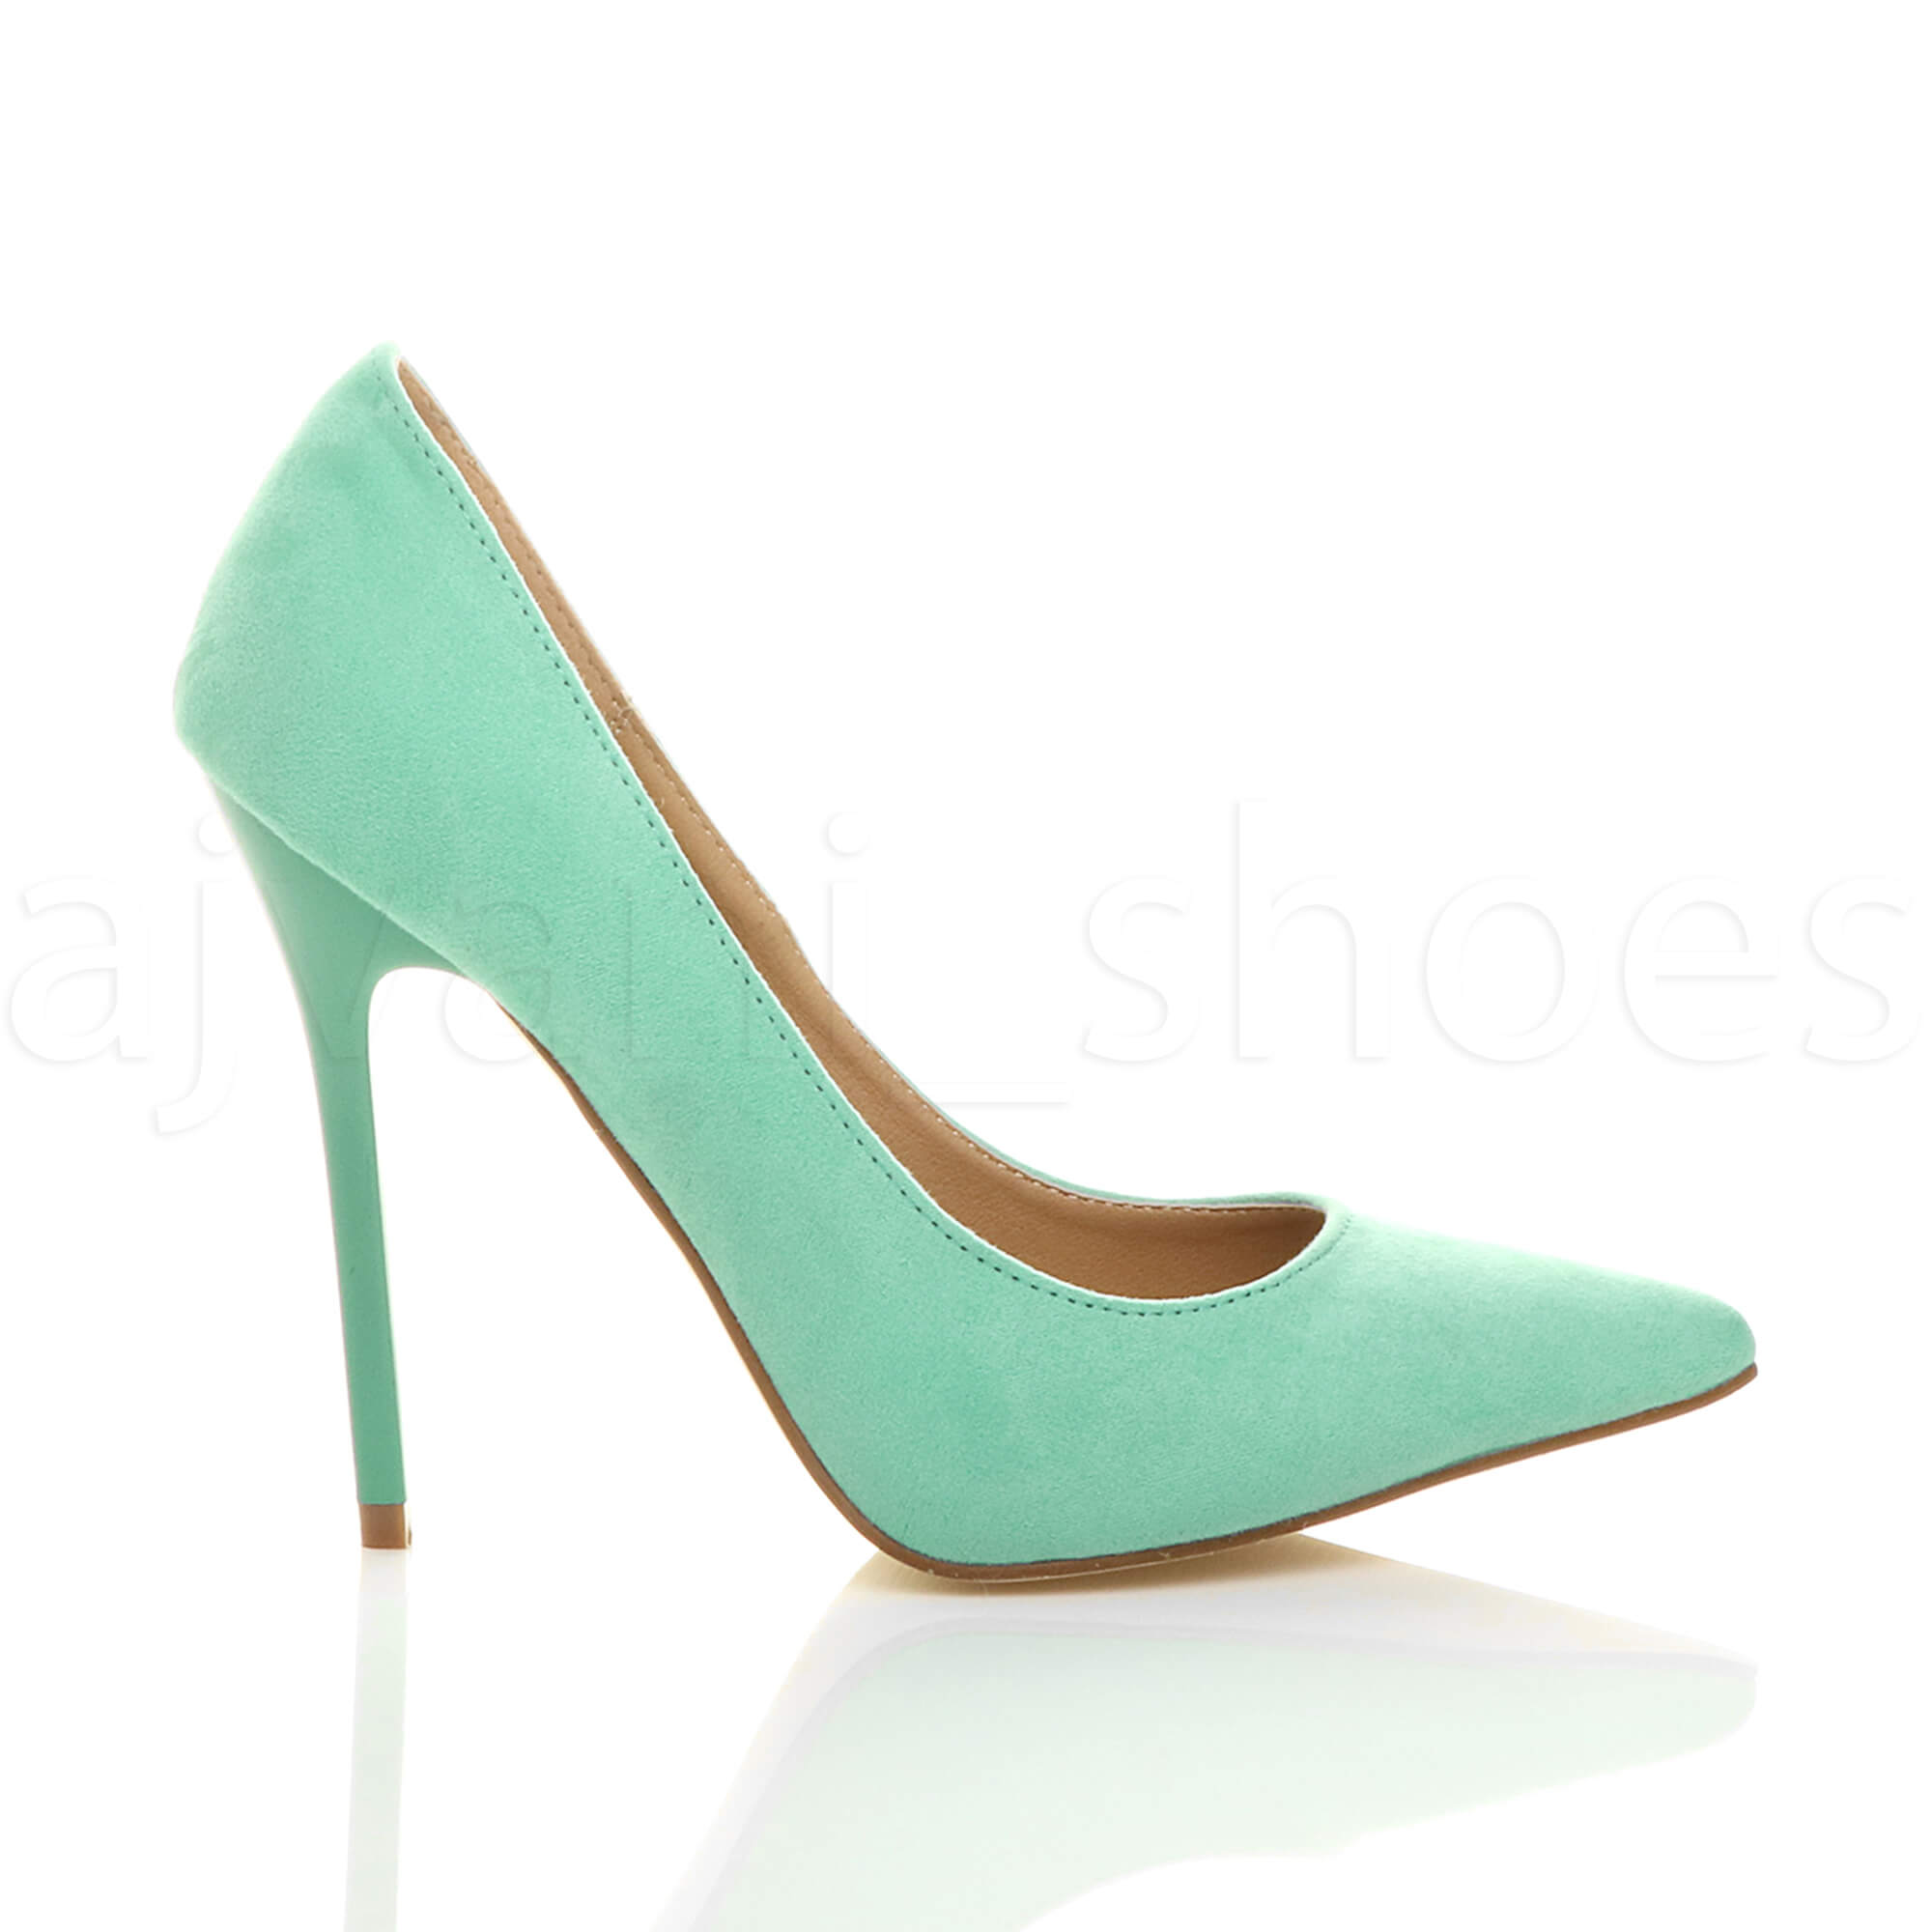 WOMENS-LADIES-HIGH-HEEL-POINTED-CONTRAST-COURT-SMART-PARTY-WORK-SHOES-PUMPS-SIZE thumbnail 145